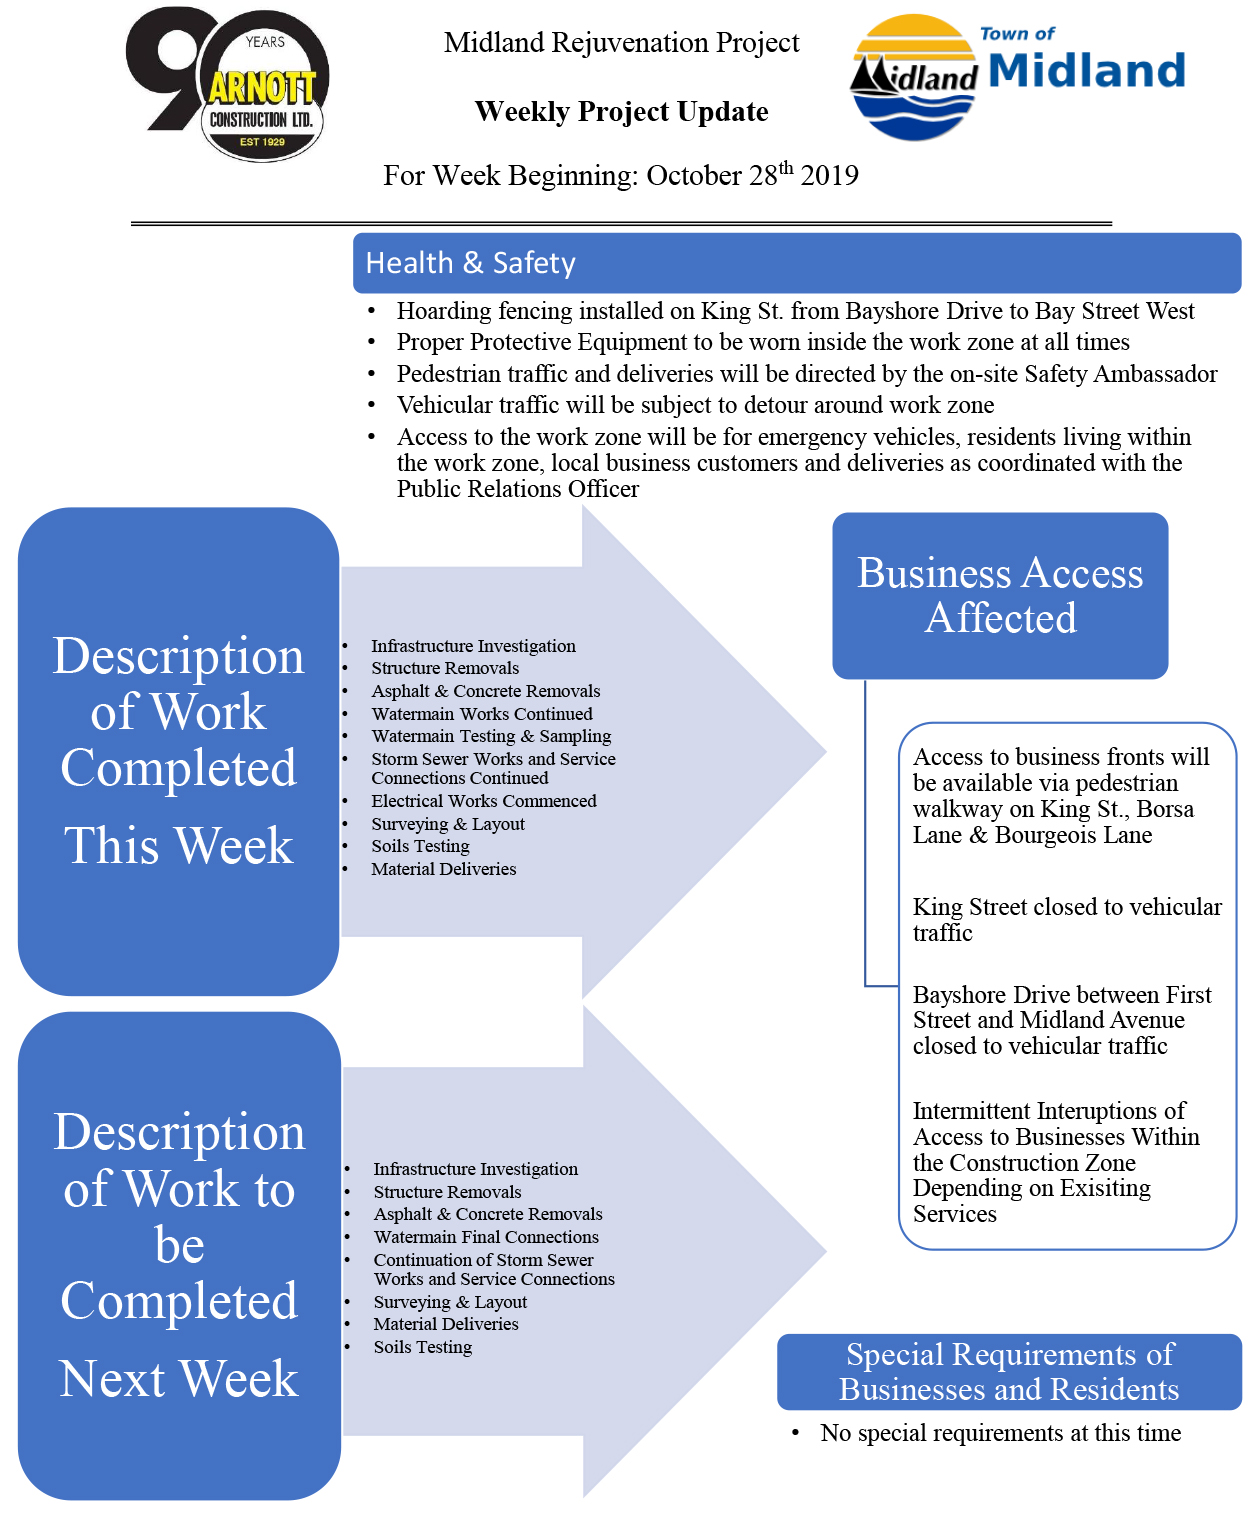 Business disruption and mitigation plan 2018 015    week of october 28 2019